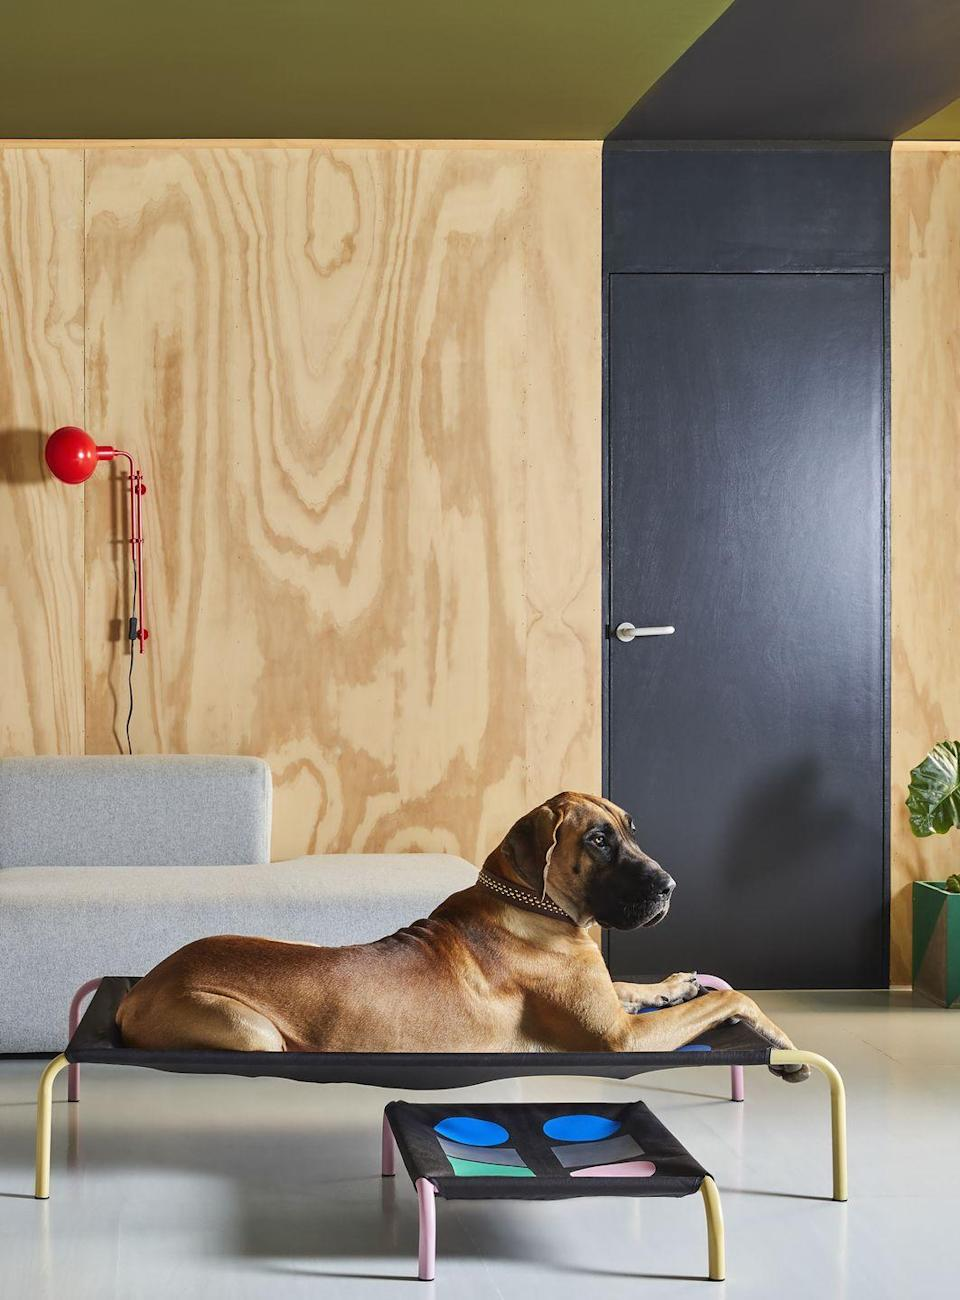 """<p>Manchester-based brand Hik9 has teamed up with Studio Rhonda to create a series of seven striking beds that feature graphic prints, punchy colours and sleek lines: 'I wanted to make the product a desirable item of furniture for the home, rather than just a dog bed,' explains Studio Rhonda founder Rhonda Drakeford. 'Each product is really individual in its cut and design, you could even hang it on the wall as a piece of artwork in your home if you wanted to.' From £70, <a href=""""https://www.hik9.com/"""" rel=""""nofollow noopener"""" target=""""_blank"""" data-ylk=""""slk:hik9.com"""" class=""""link rapid-noclick-resp"""">hik9.com</a><br></p>"""